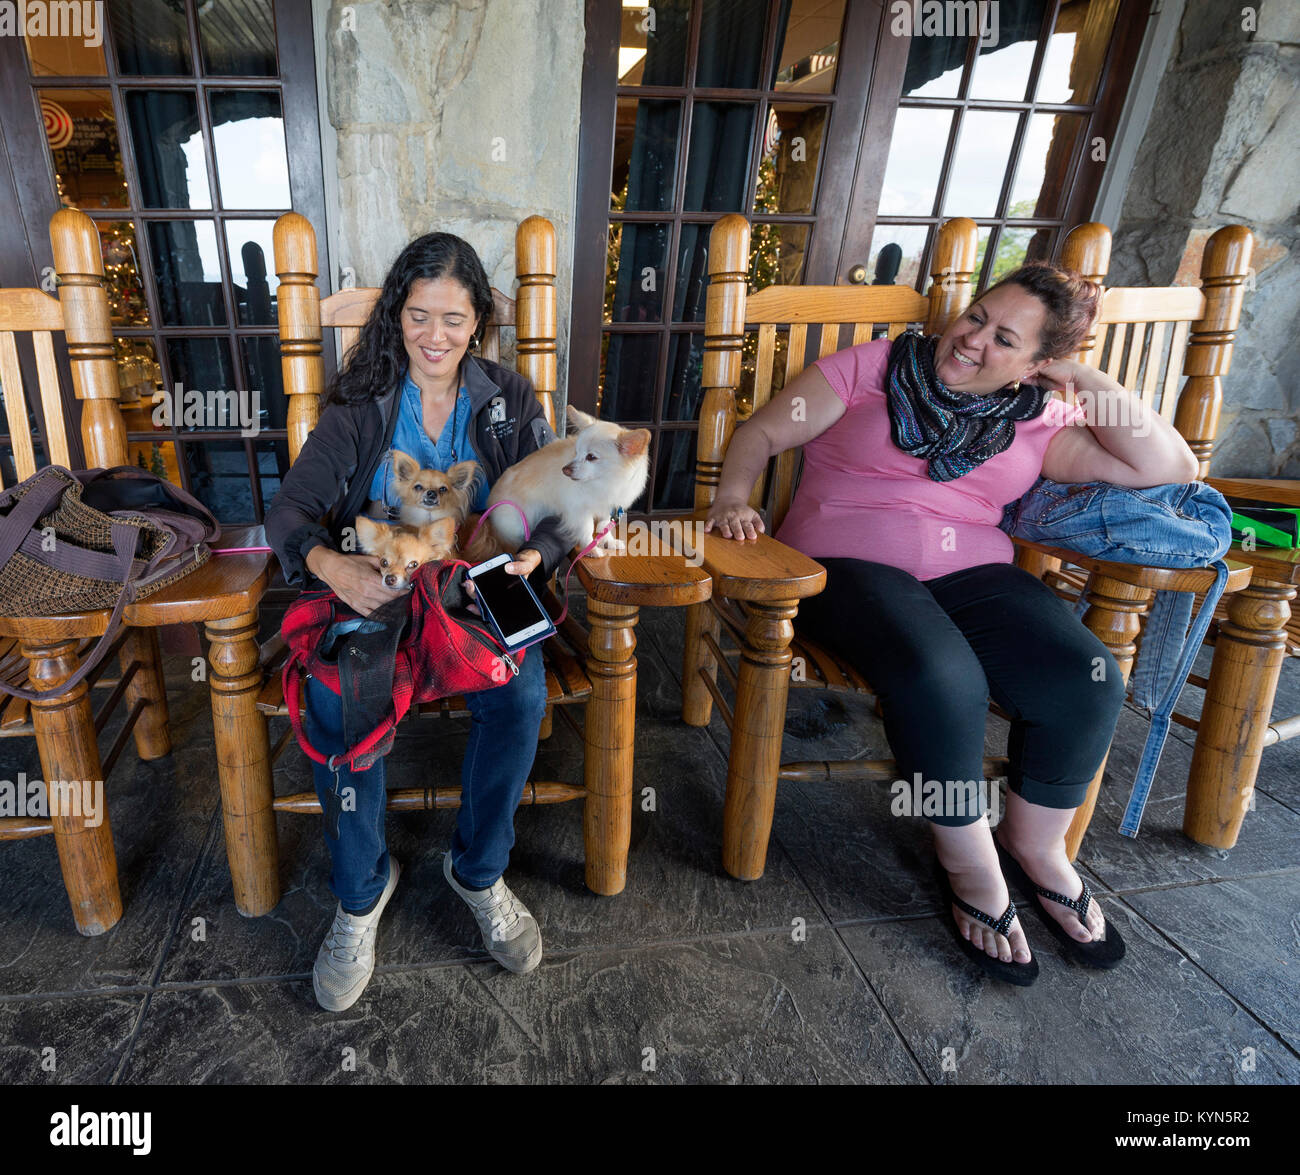 Women watching dogs while their families tour Ruby Falls in Chattanooga, Tennessee. - Stock Image